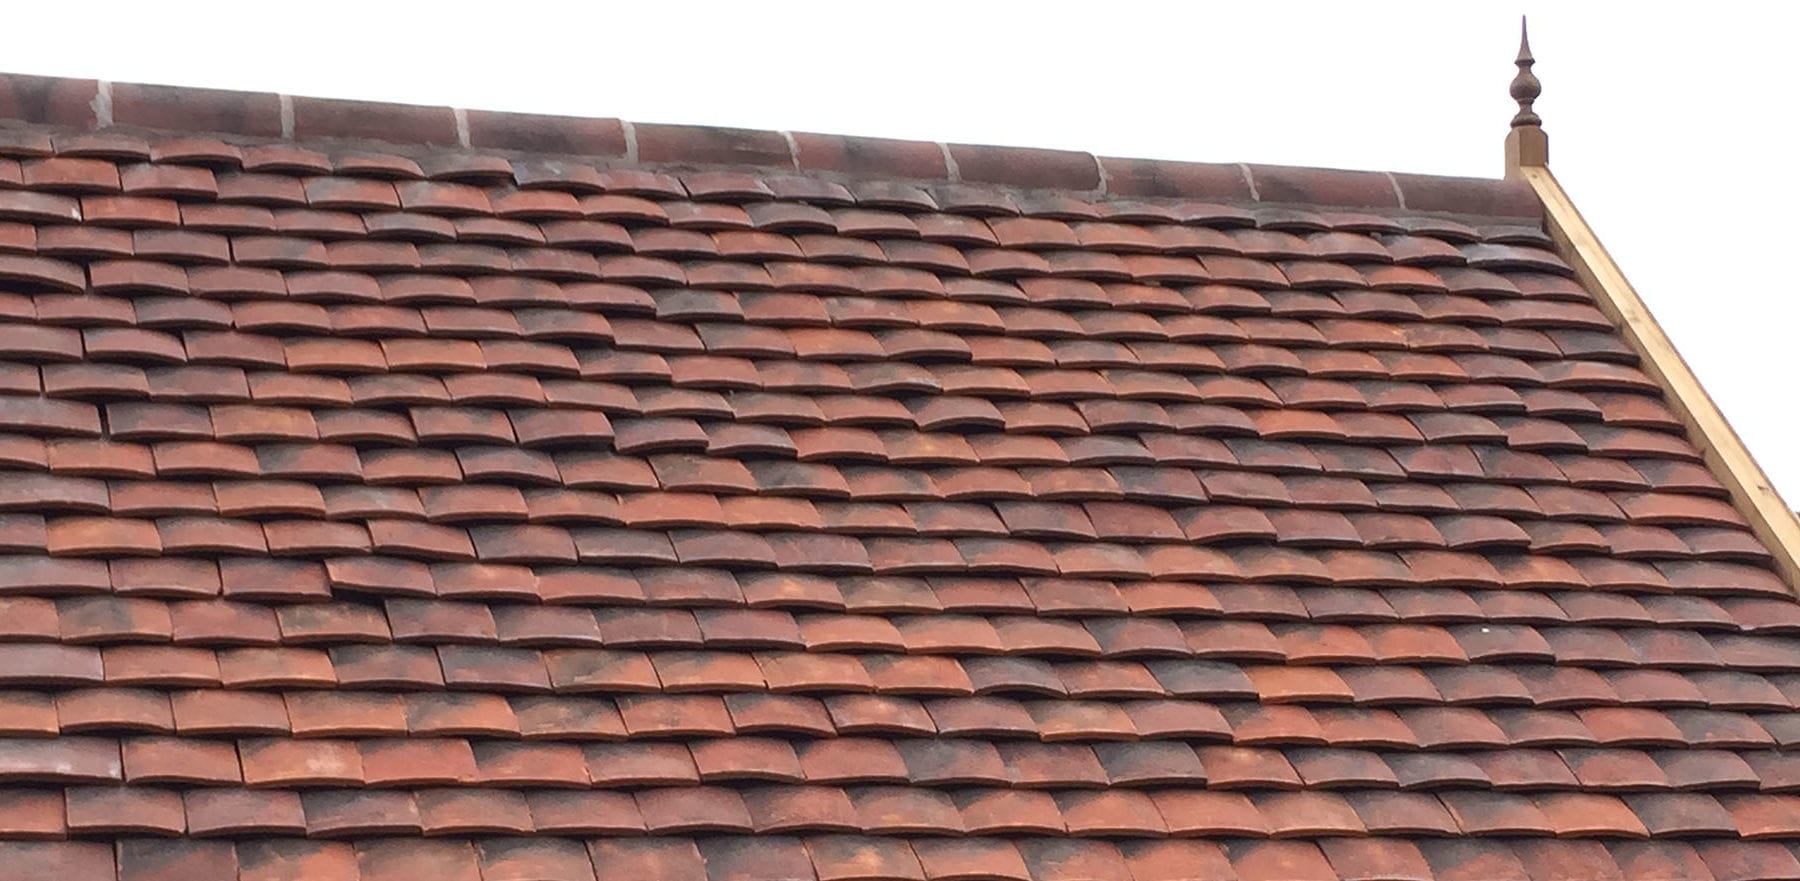 Lifestiles - Handmade Wiltshire Clay Roof Tiles - Derby, England 2